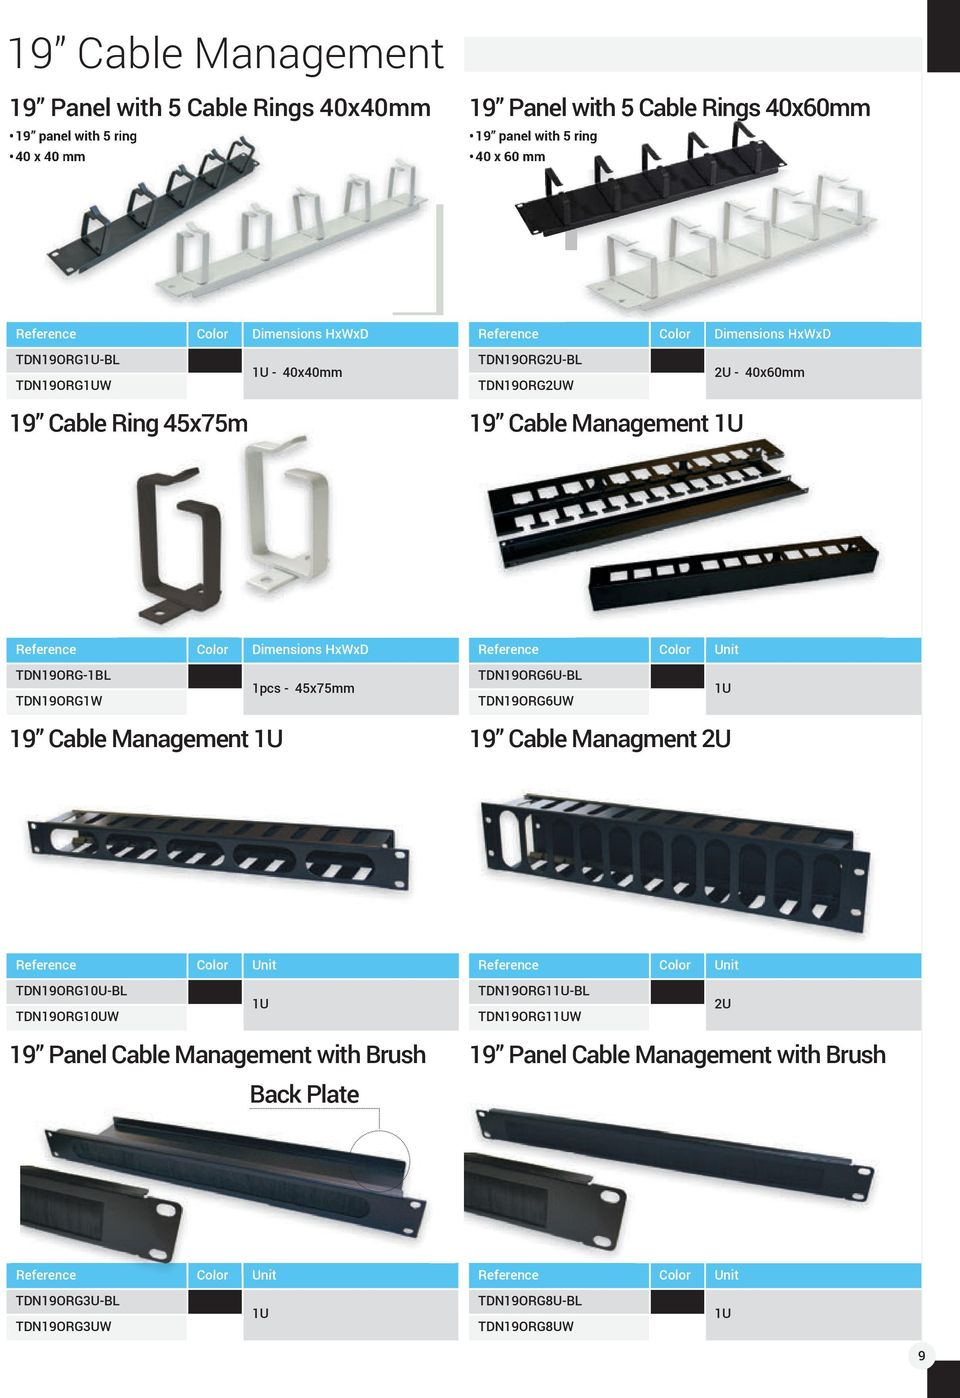 TDN19ORG-1BL 1pcs - 45x75mm TDN19ORG1W 19 Cable Management 1U Reference Color Unit TDN19ORG6U-BL 1U TDN19ORG6UW 19 Cable Managment 2U Reference Color Unit TDN19ORG10U-BL 1U TDN19ORG10UW Reference